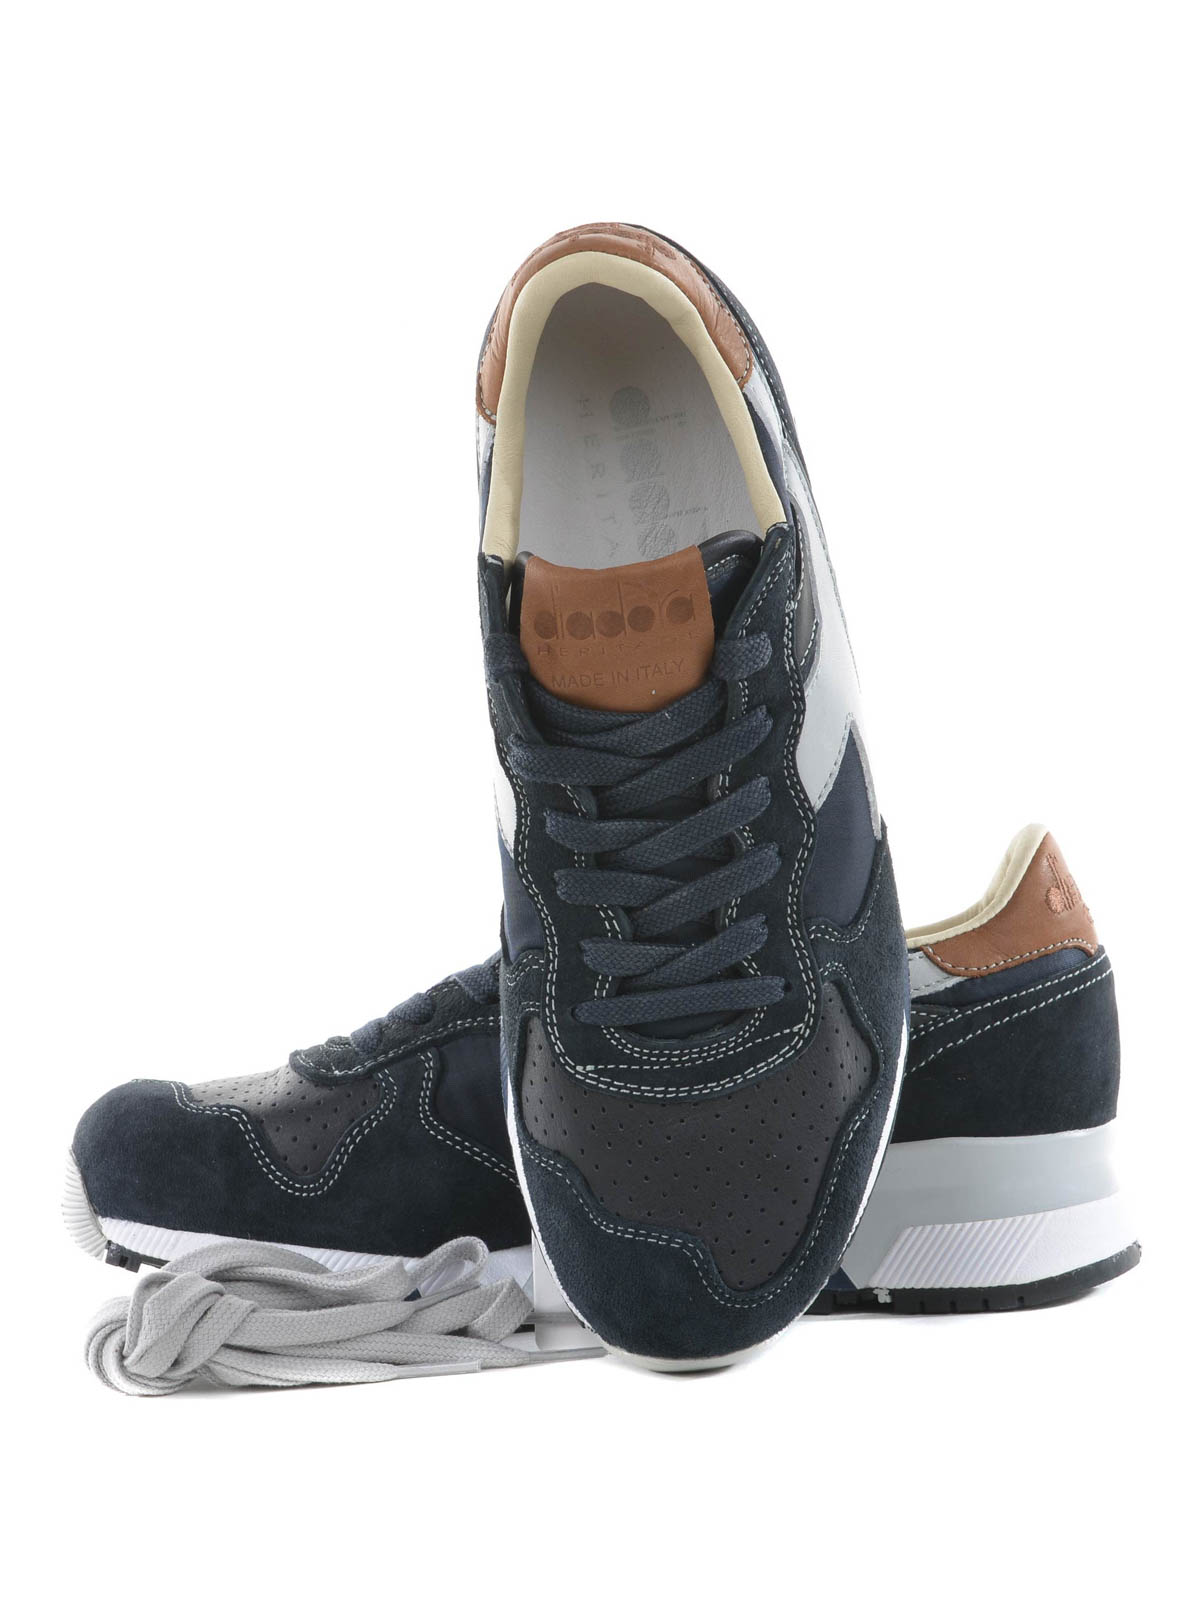 e02921f0a998 Diadora Heritage - Trident 90 Nyl sneakers - trainers - 161303 60117